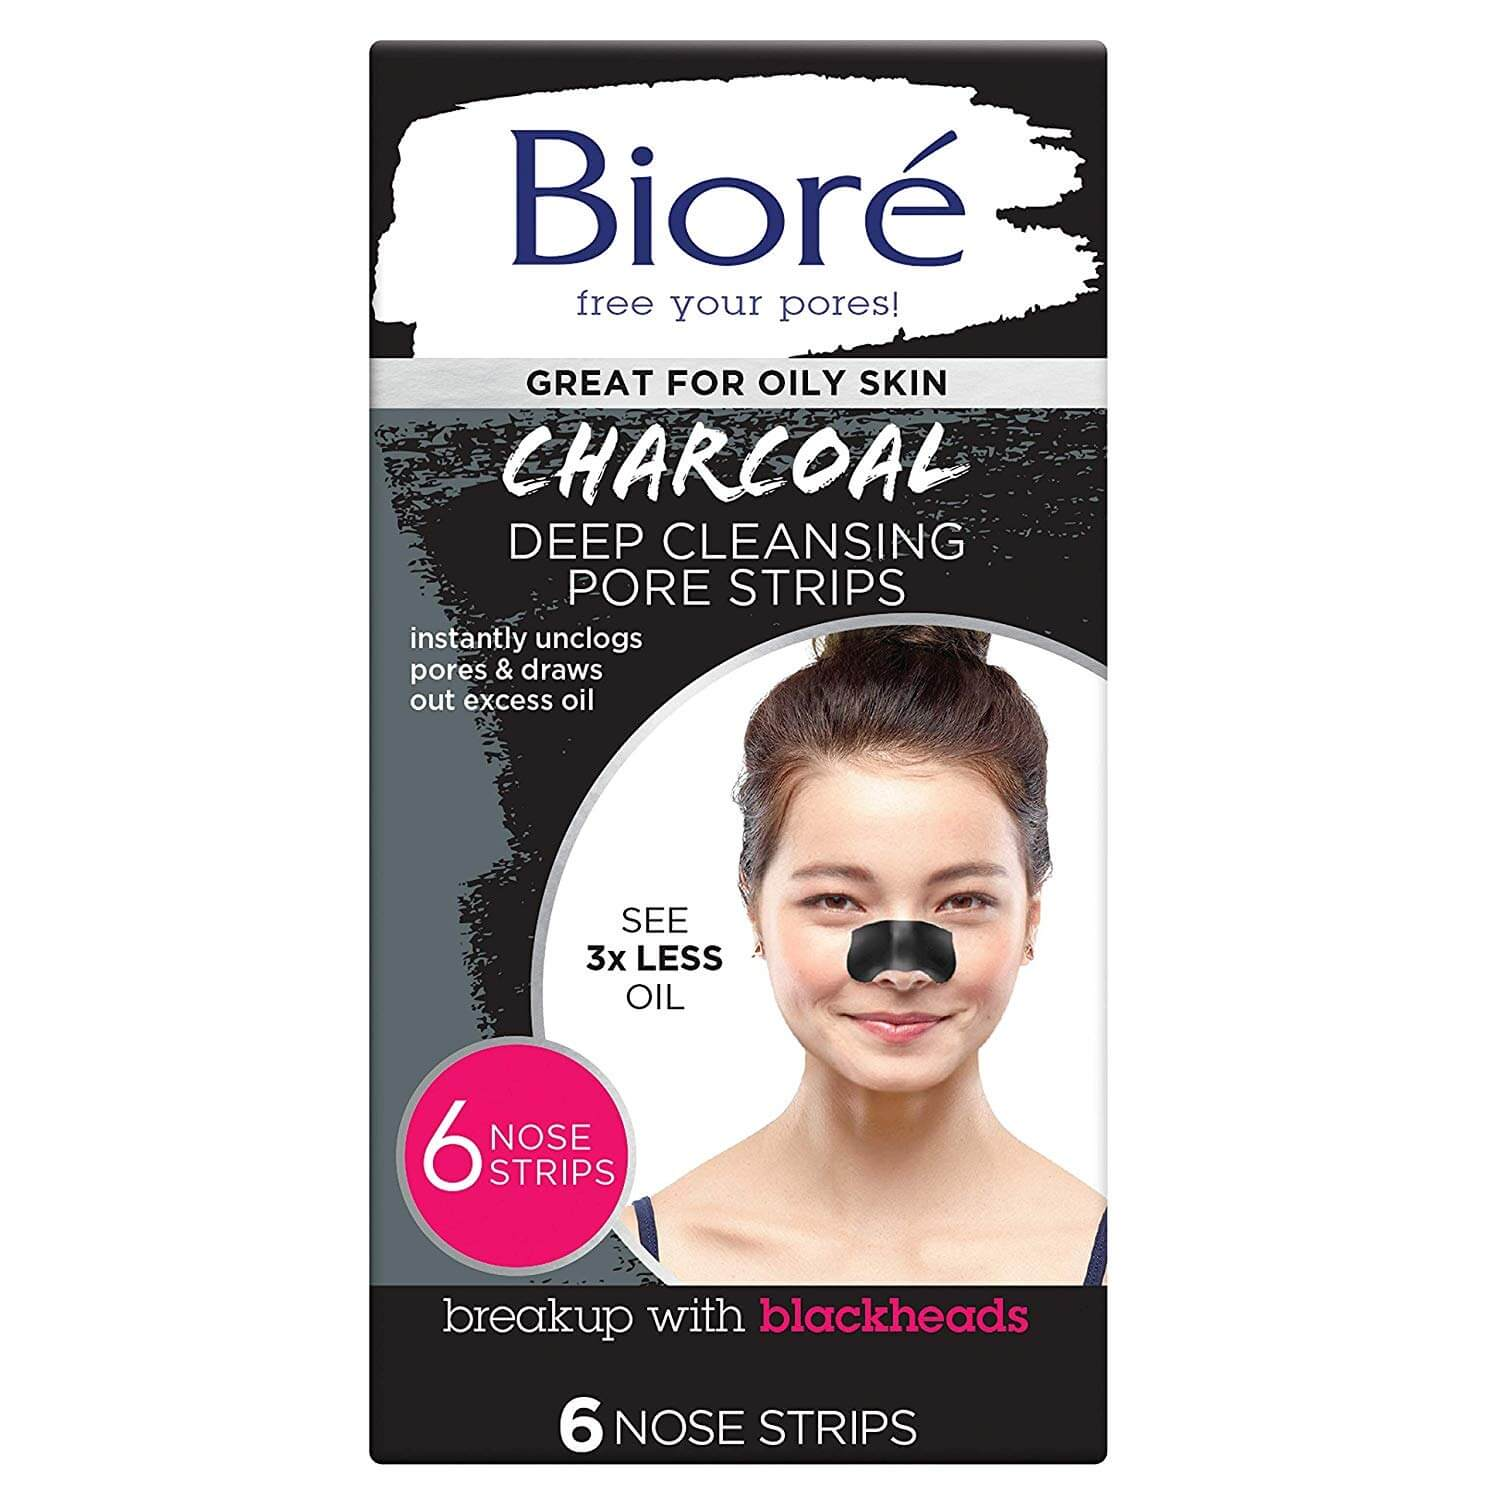 Bioré Charcoal Deep Cleansing Pore Strips